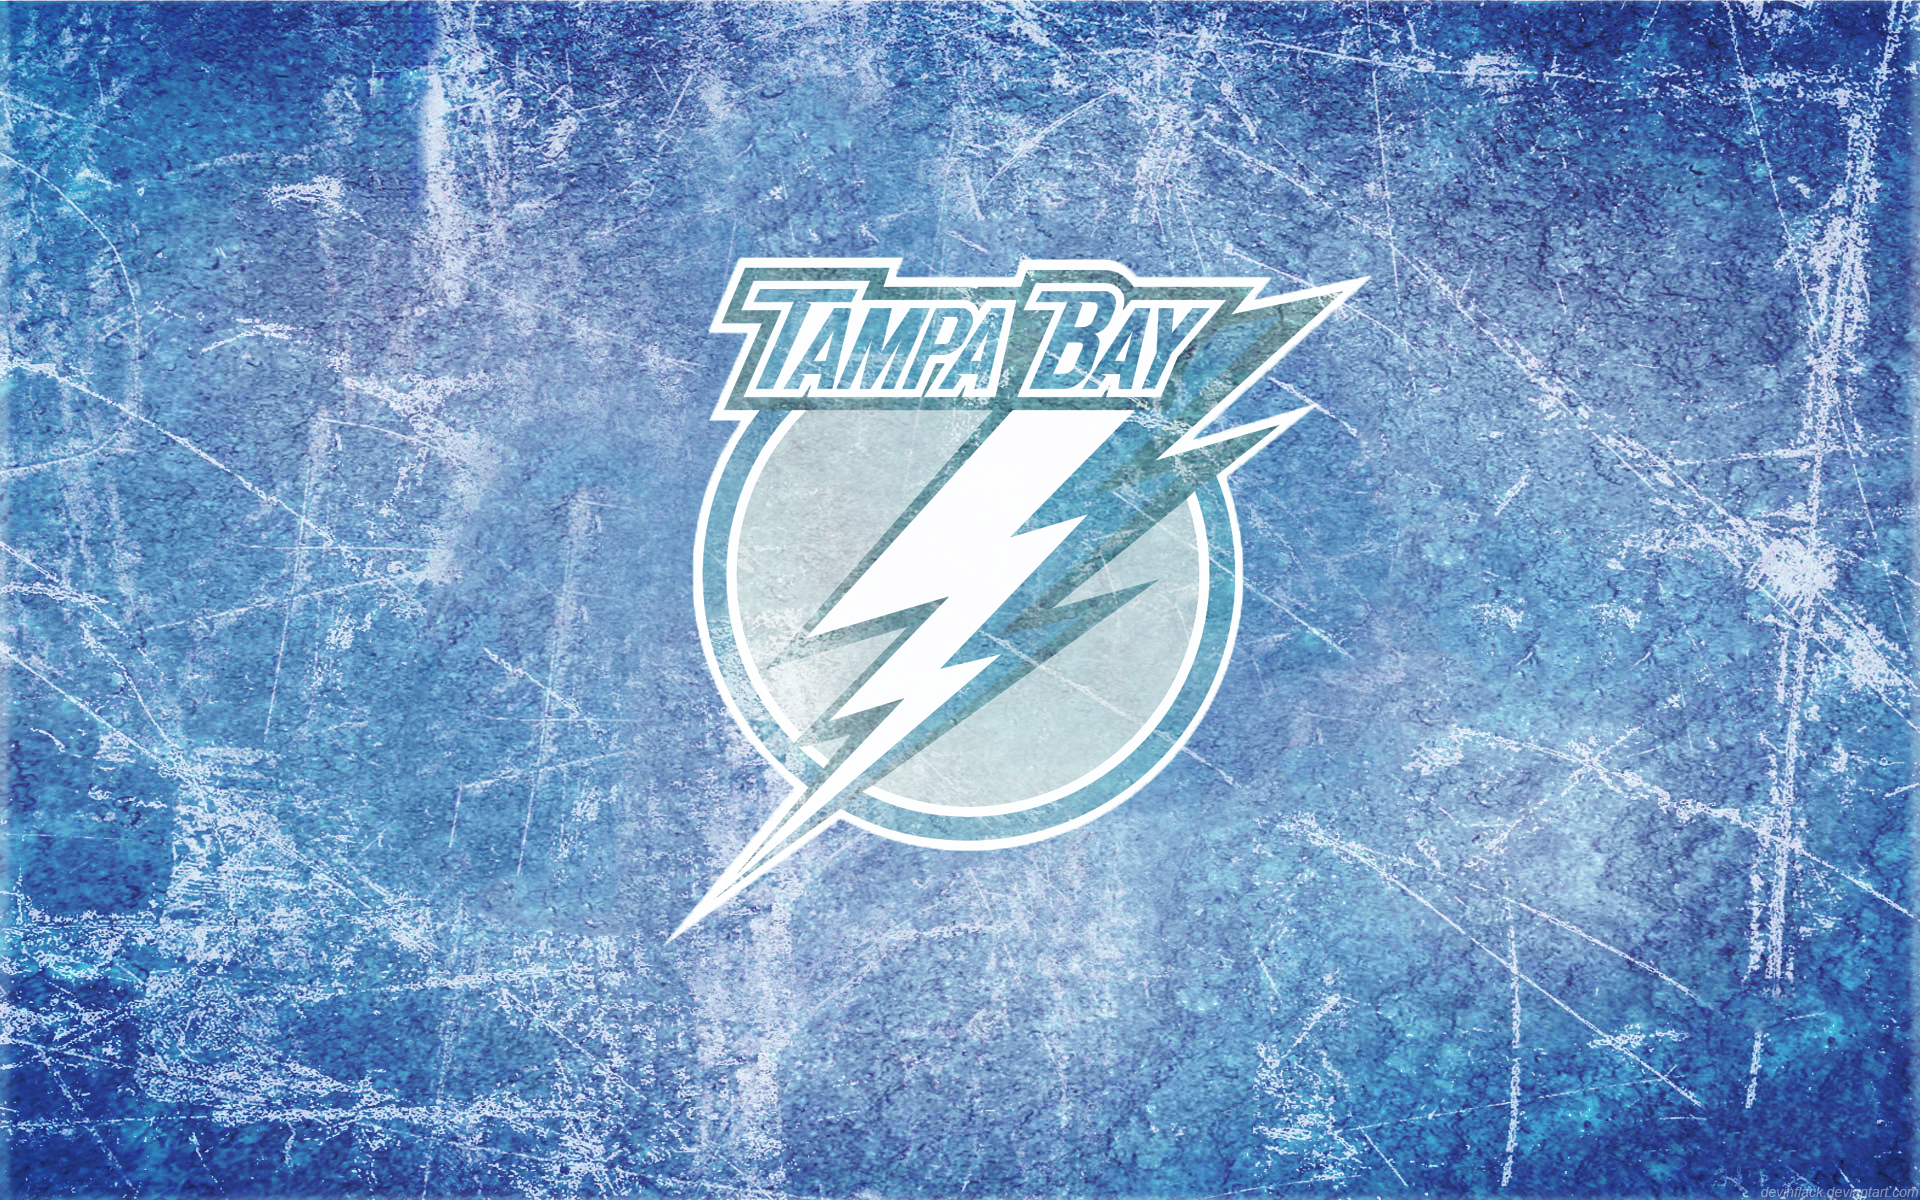 Tampa Bay Lightning Iphone Wallpaper Download HD Walls Find 1920x1200